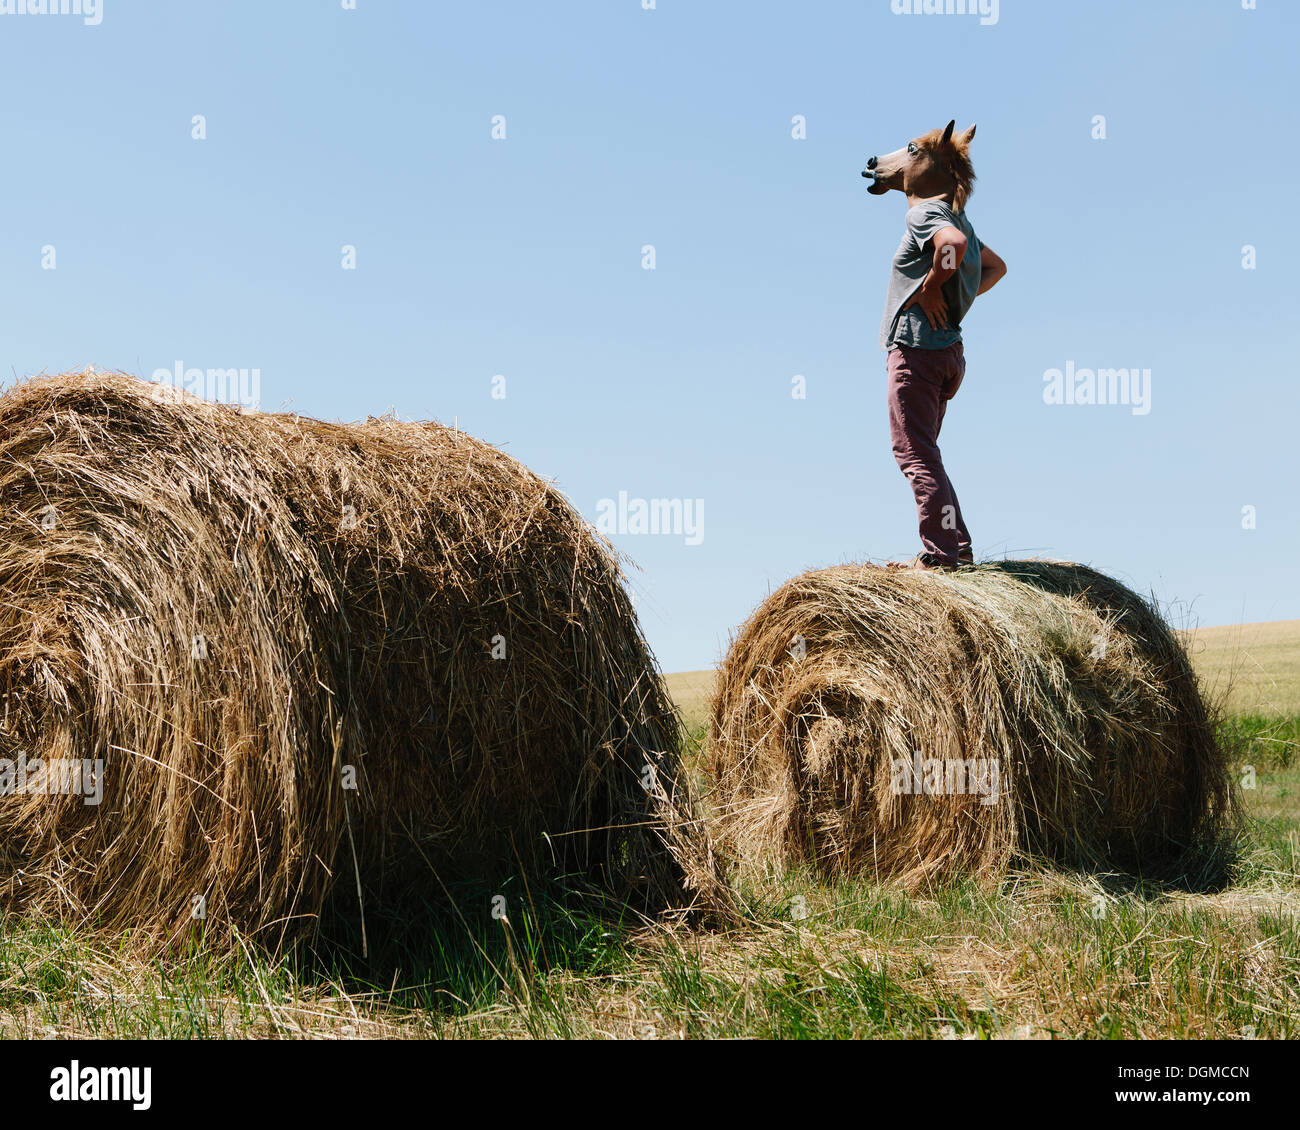 A man wearing a horse mask, standing on a hay bale, looking out over farmland. - Stock Image